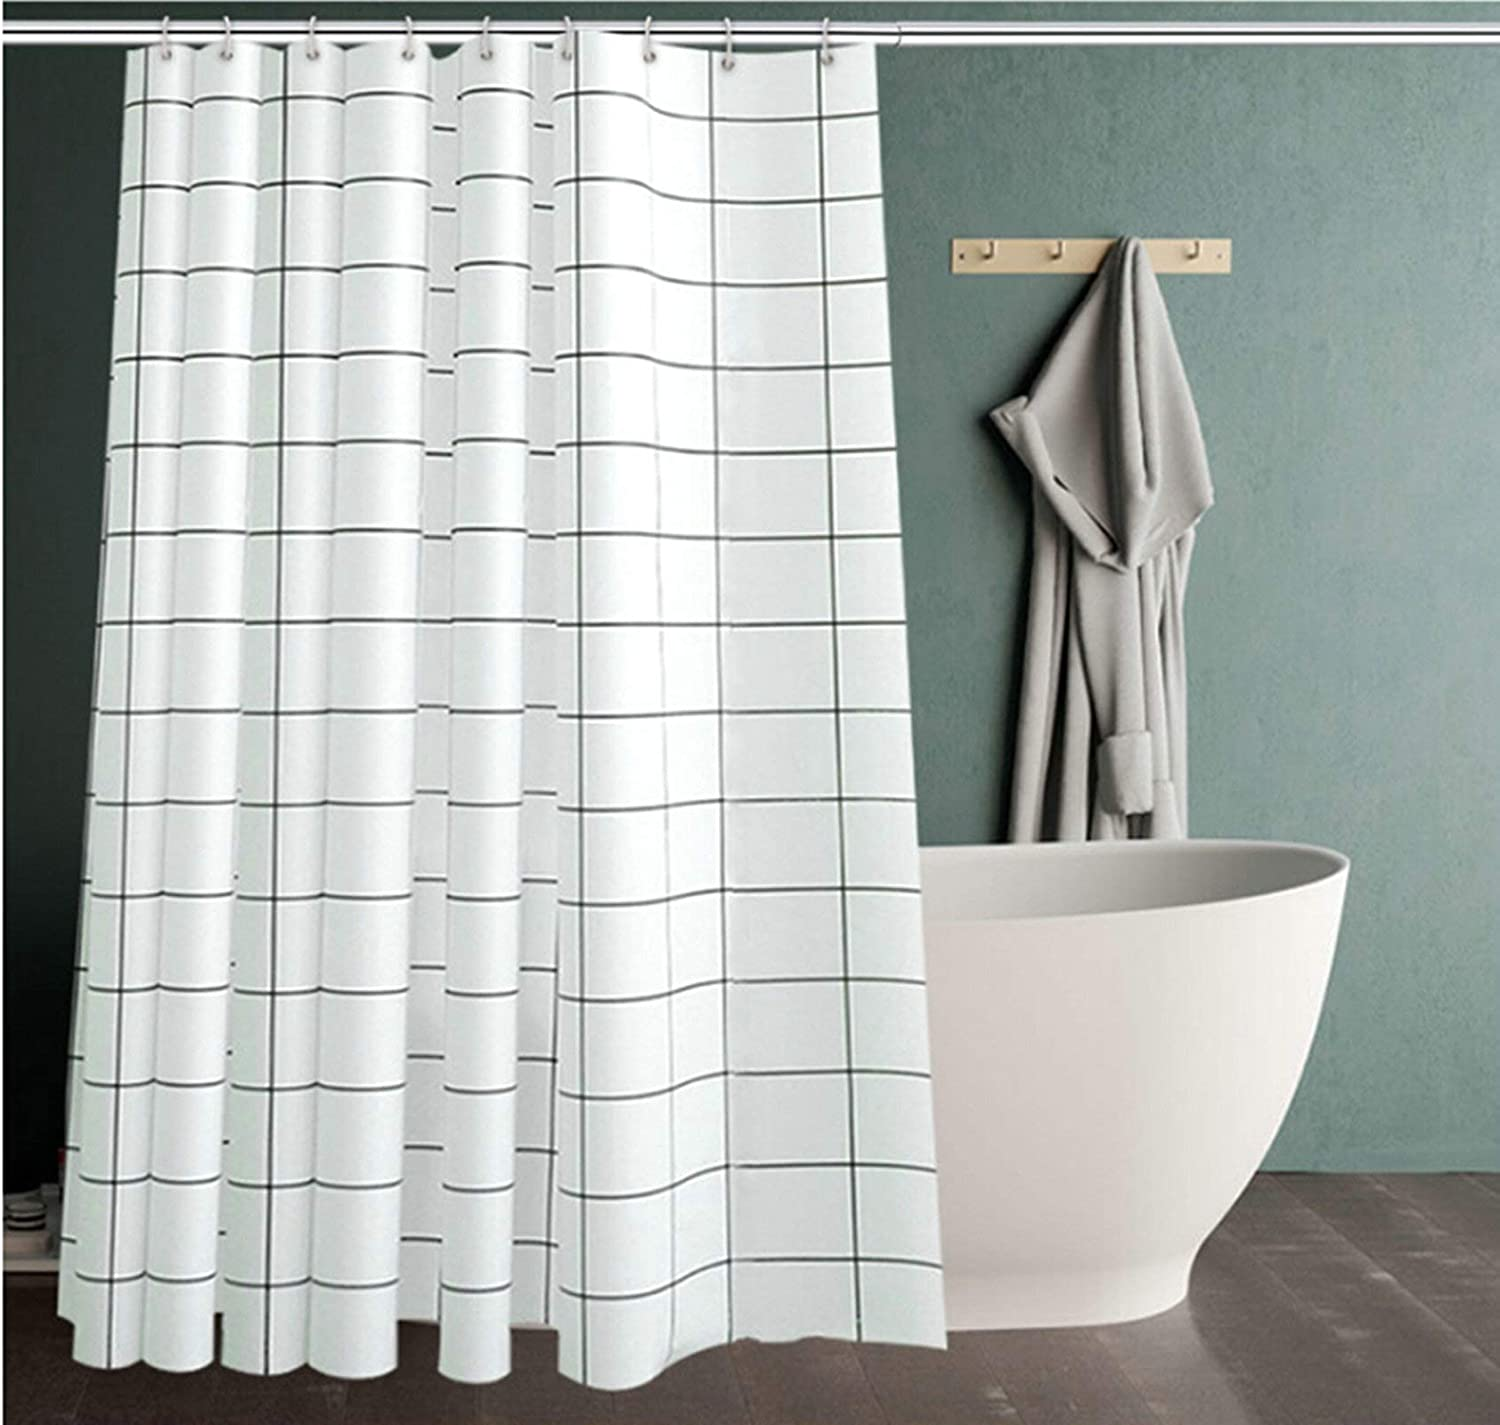 KnSam Rideau de Douche Original Simple en PEVA Blanc Carreaux 80x180 Imperm/éable Anti Moisissure